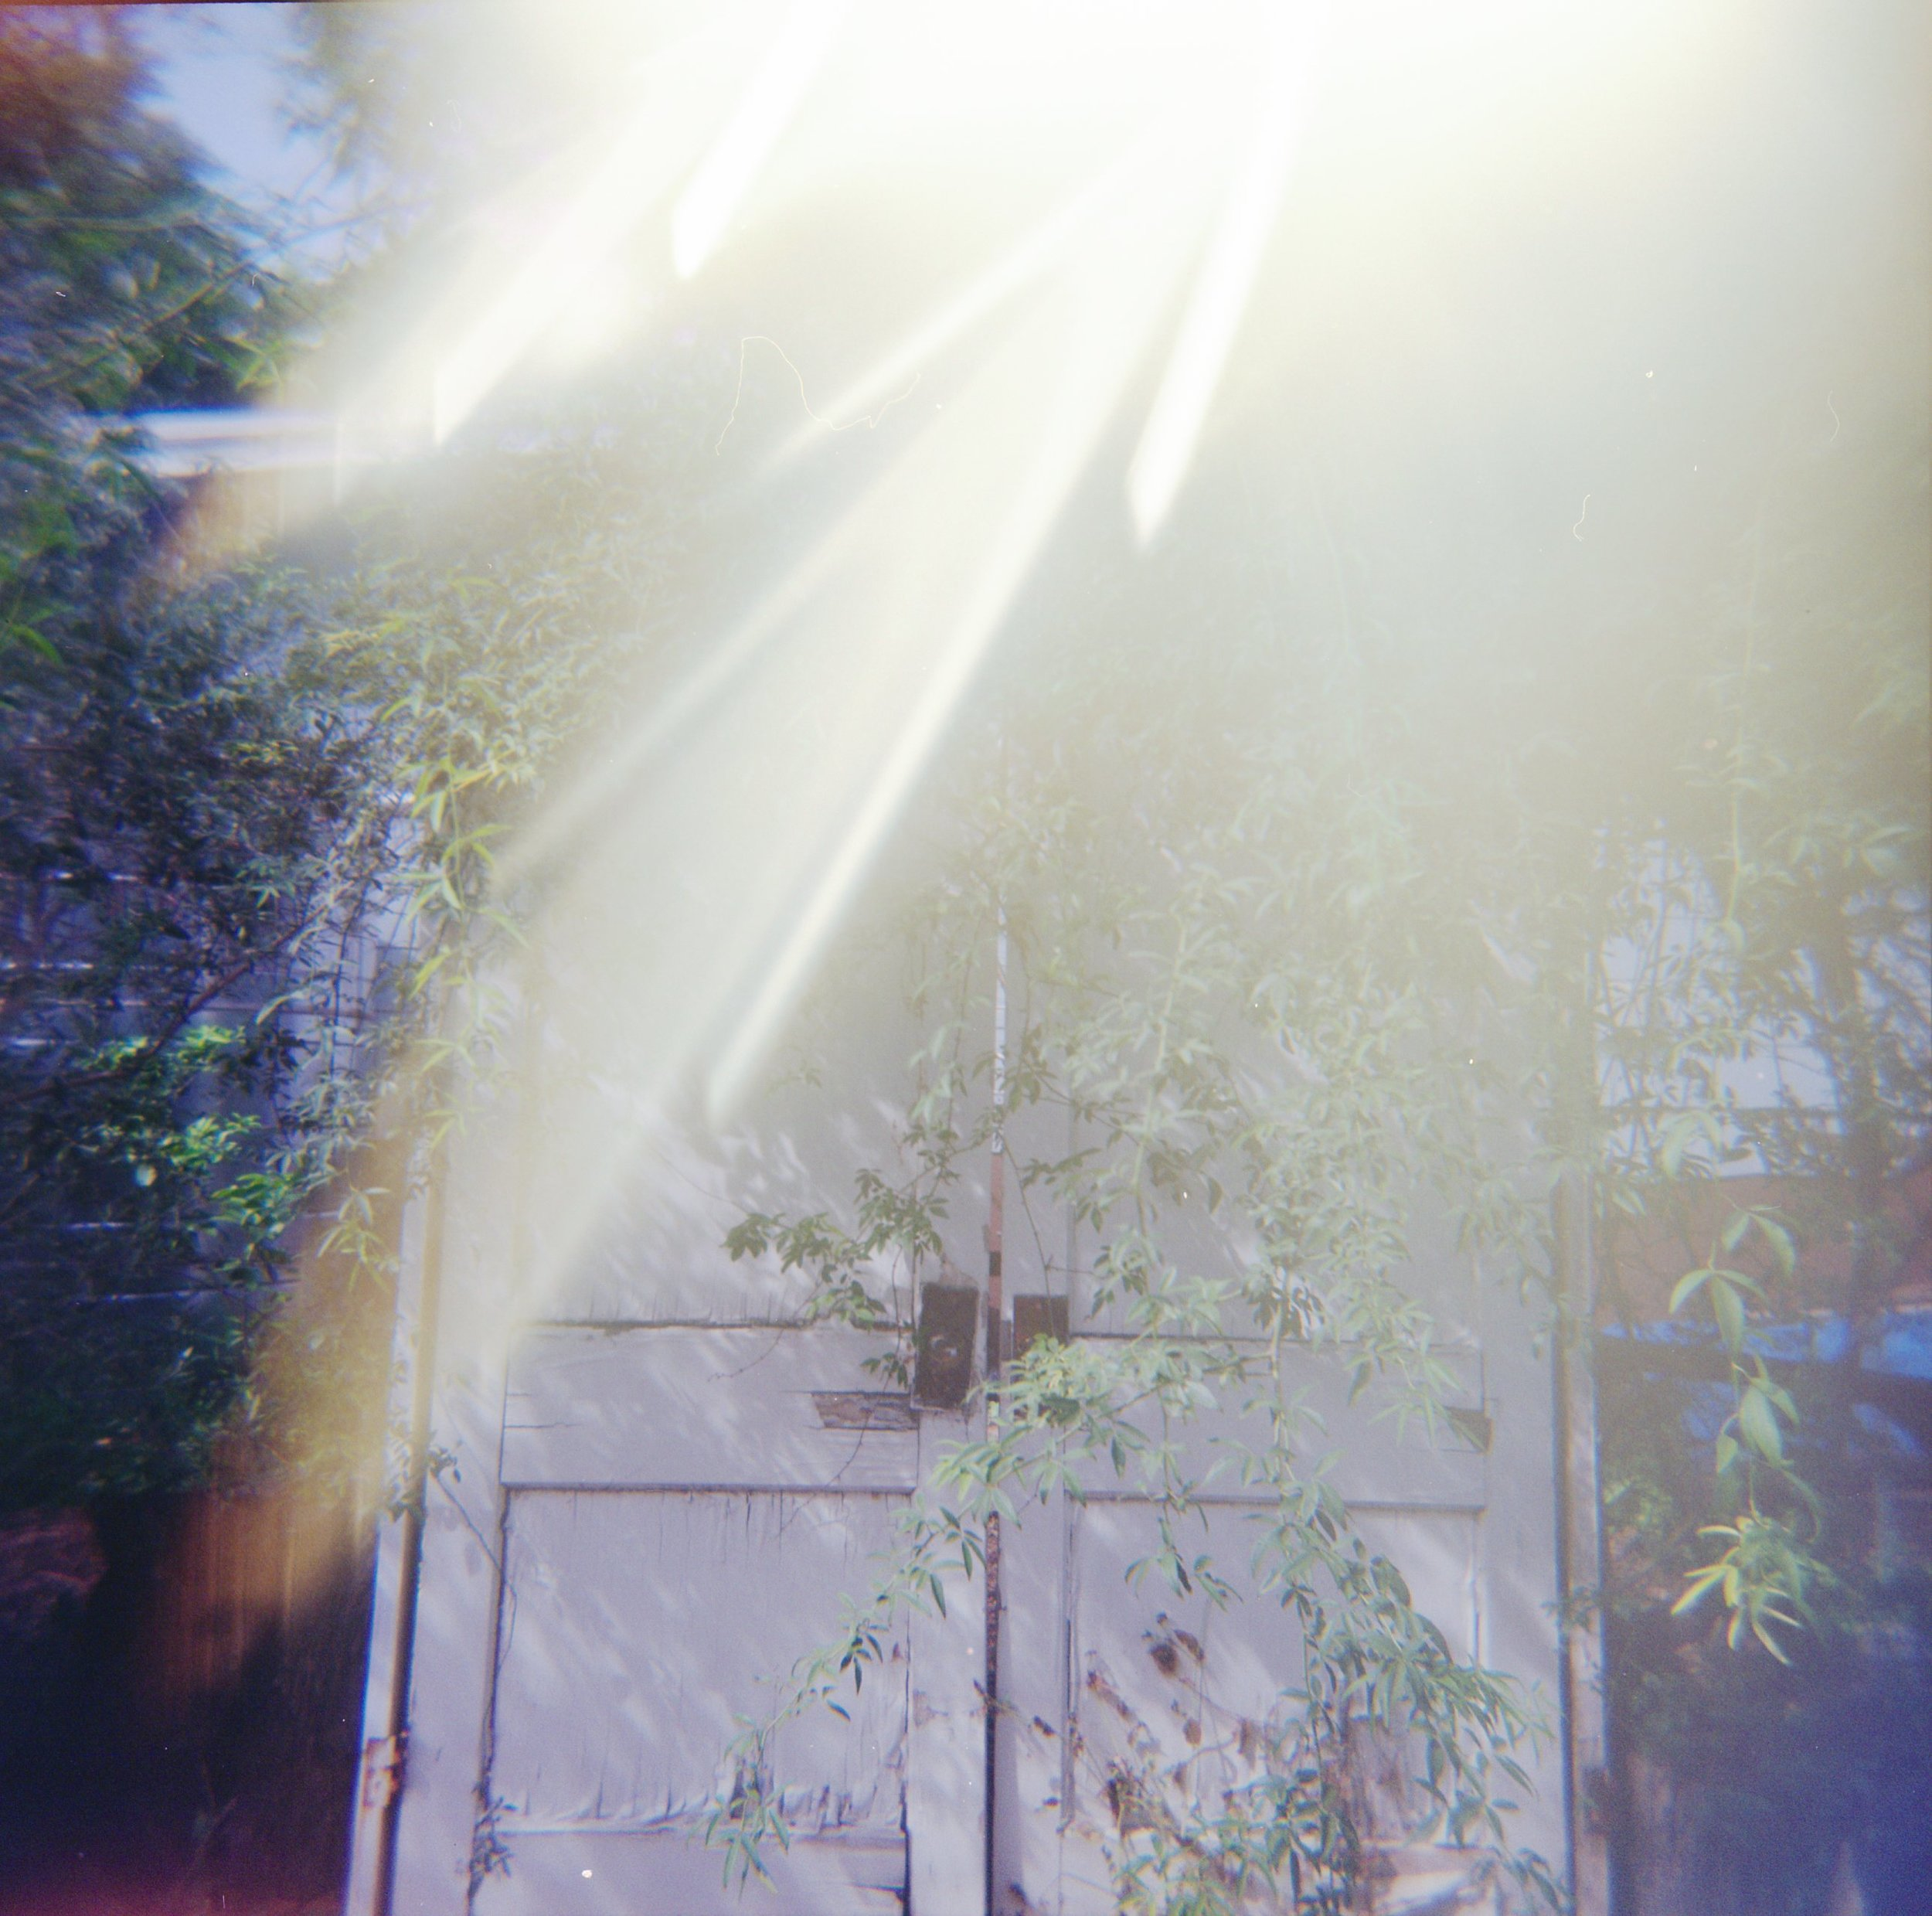 120mm film with light leaks